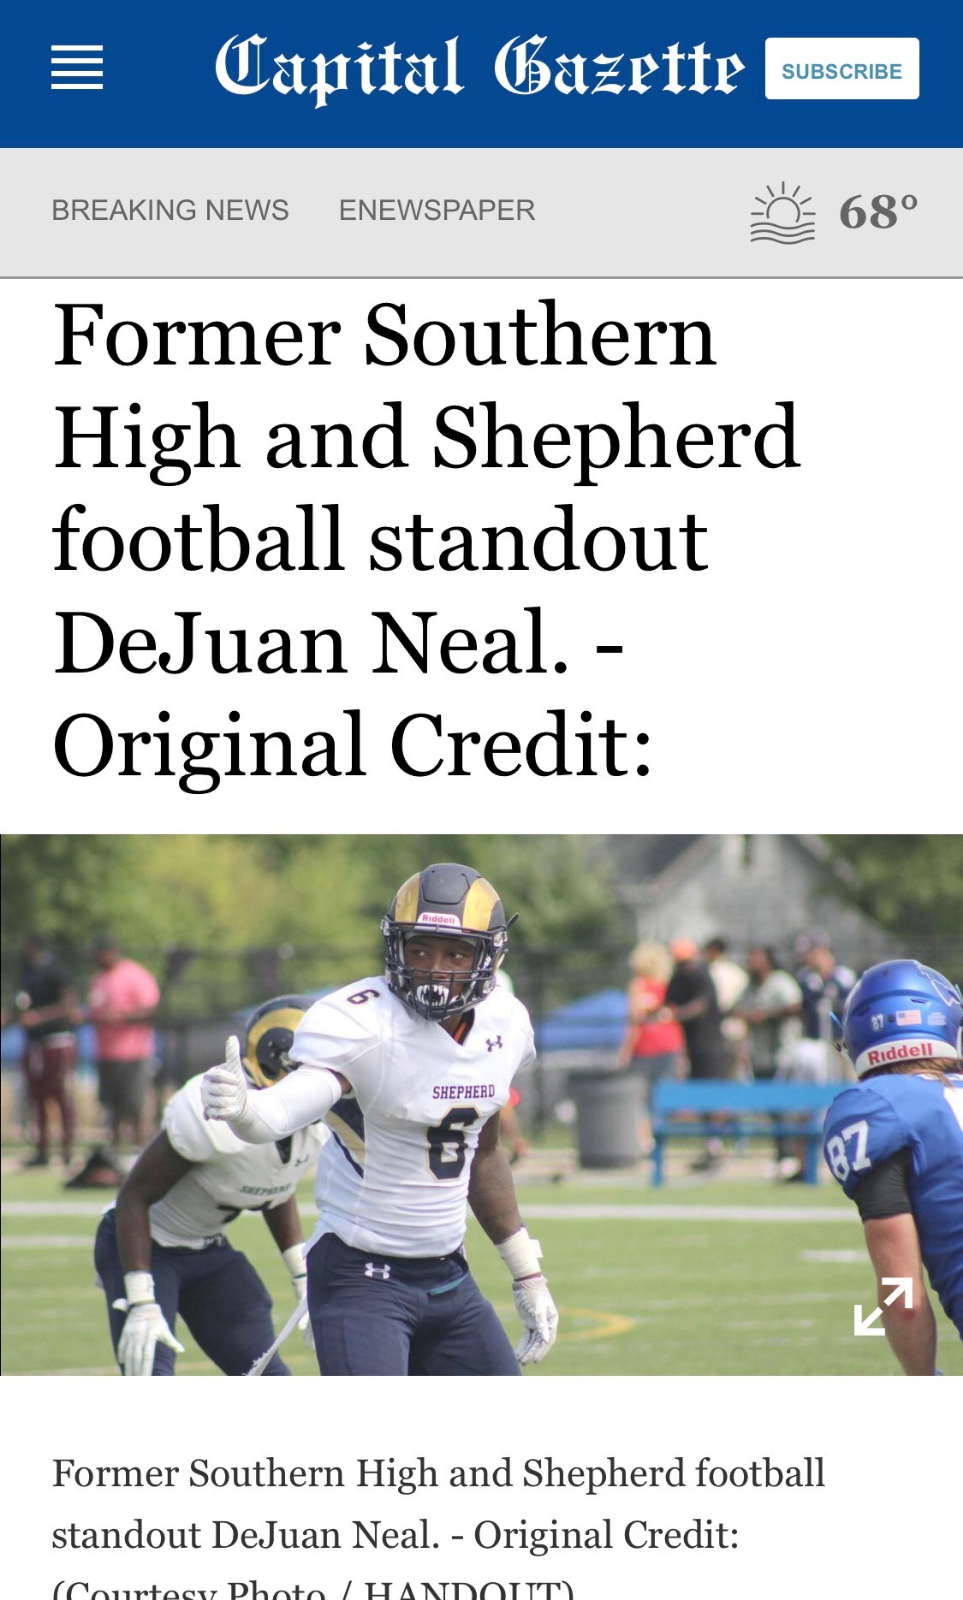 DeJuan Neal headed to the NFL!